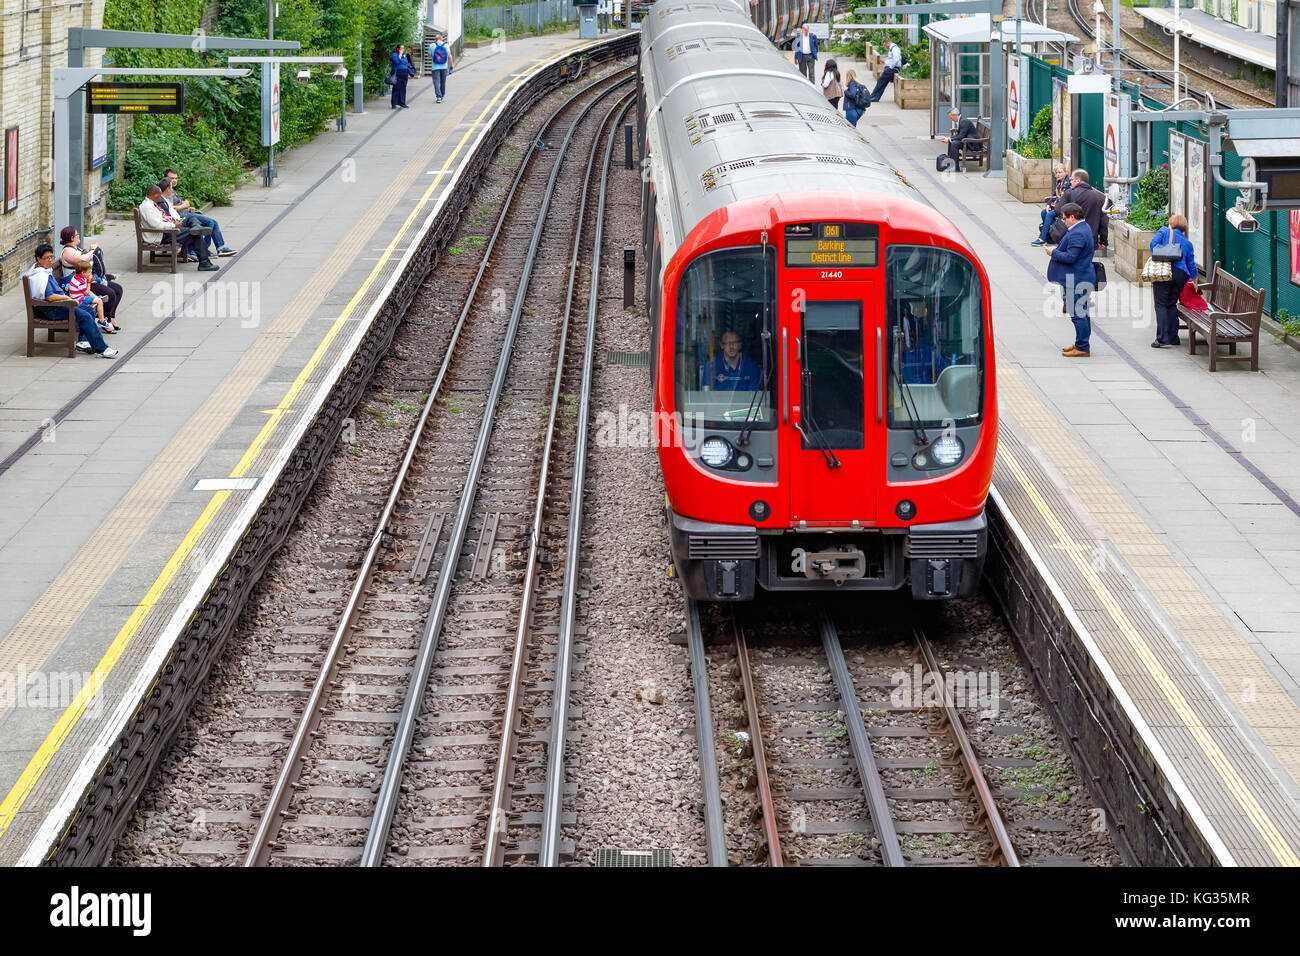 London, UK - October 23, 2017 - West Brompton underground station platforms, with northbound train arriving - Stock Image